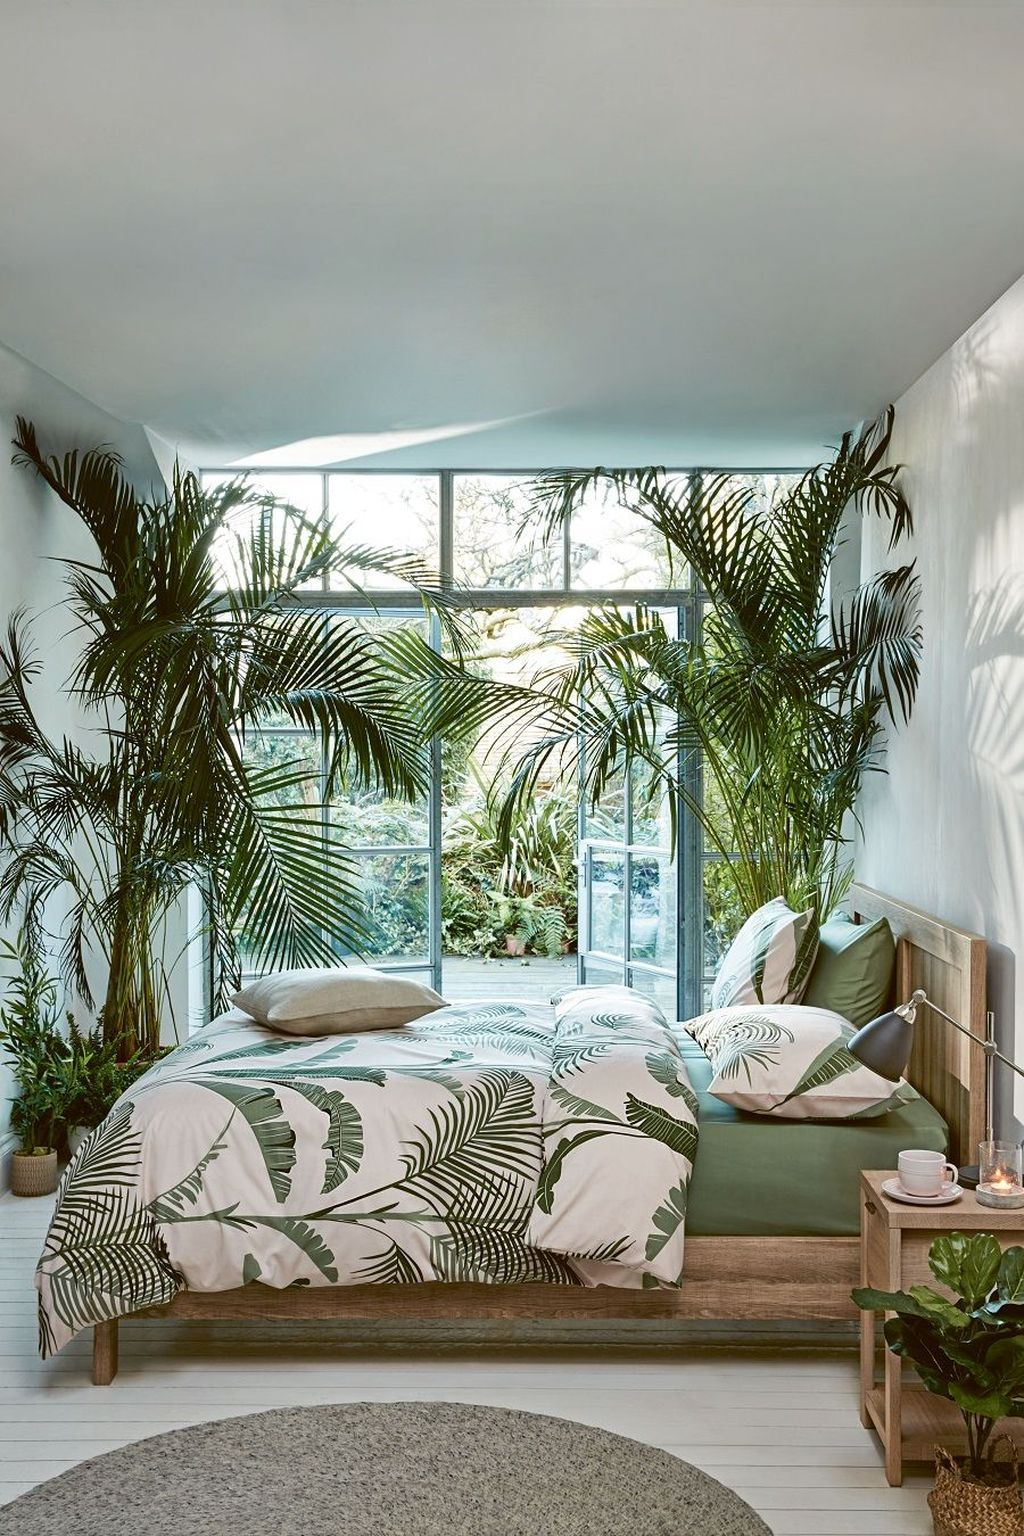 Best Summer Interior Design Ideas To Beautify Your Home 12